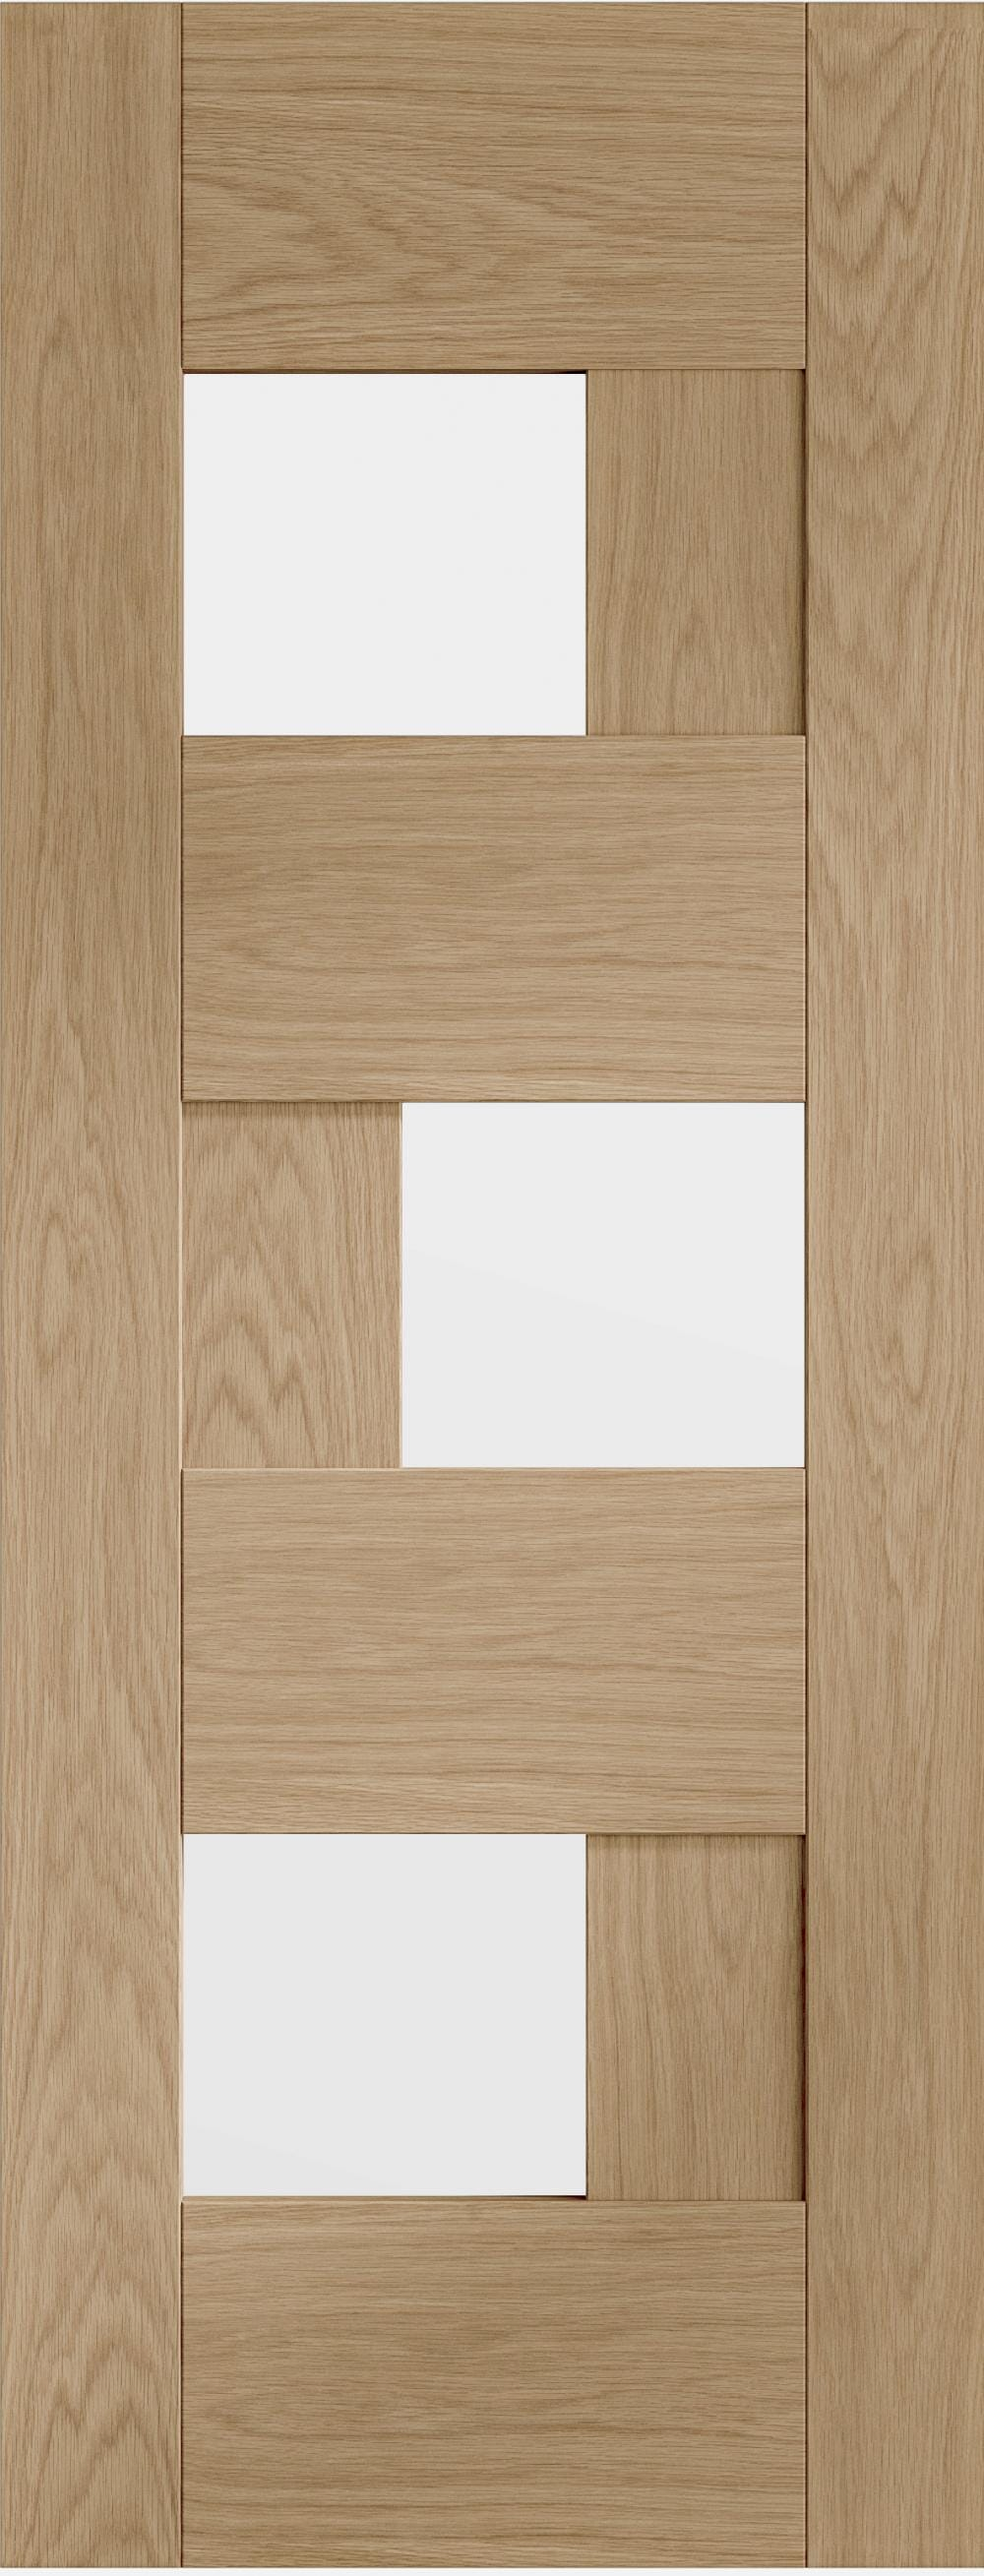 Perugia Oak - Clear Glass Prefinished Image